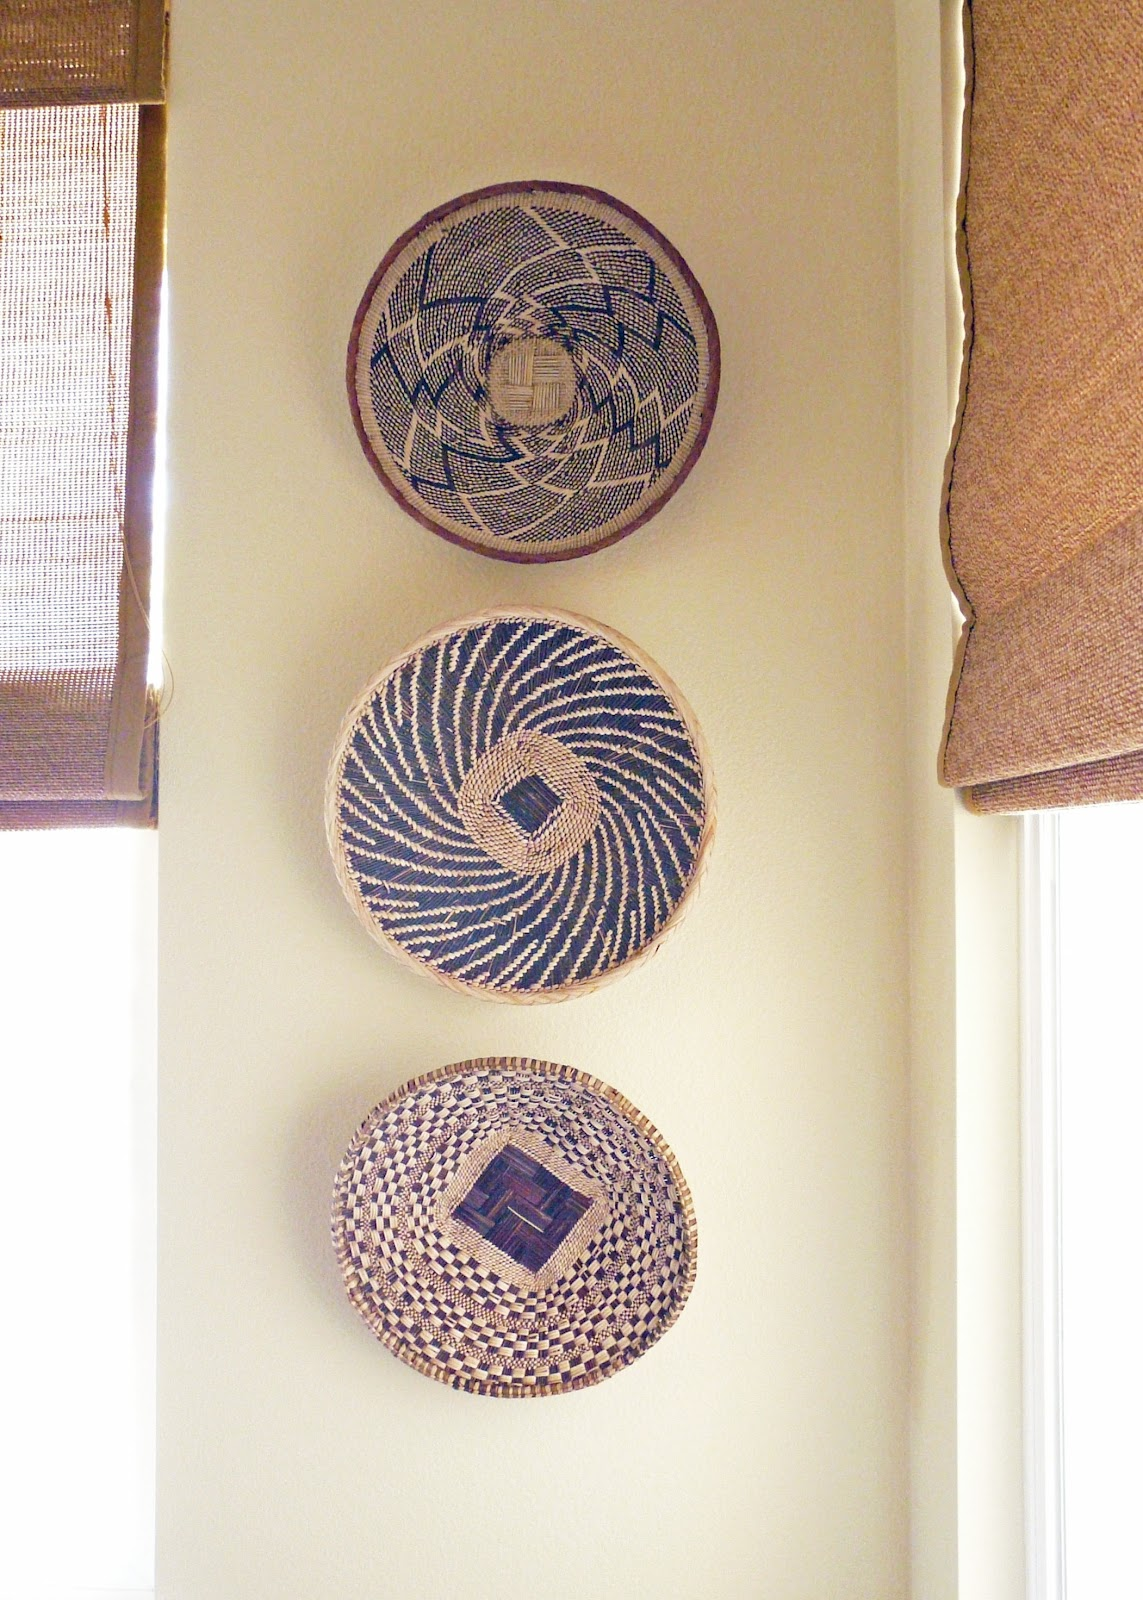 [Home] African Basket Wall Decor